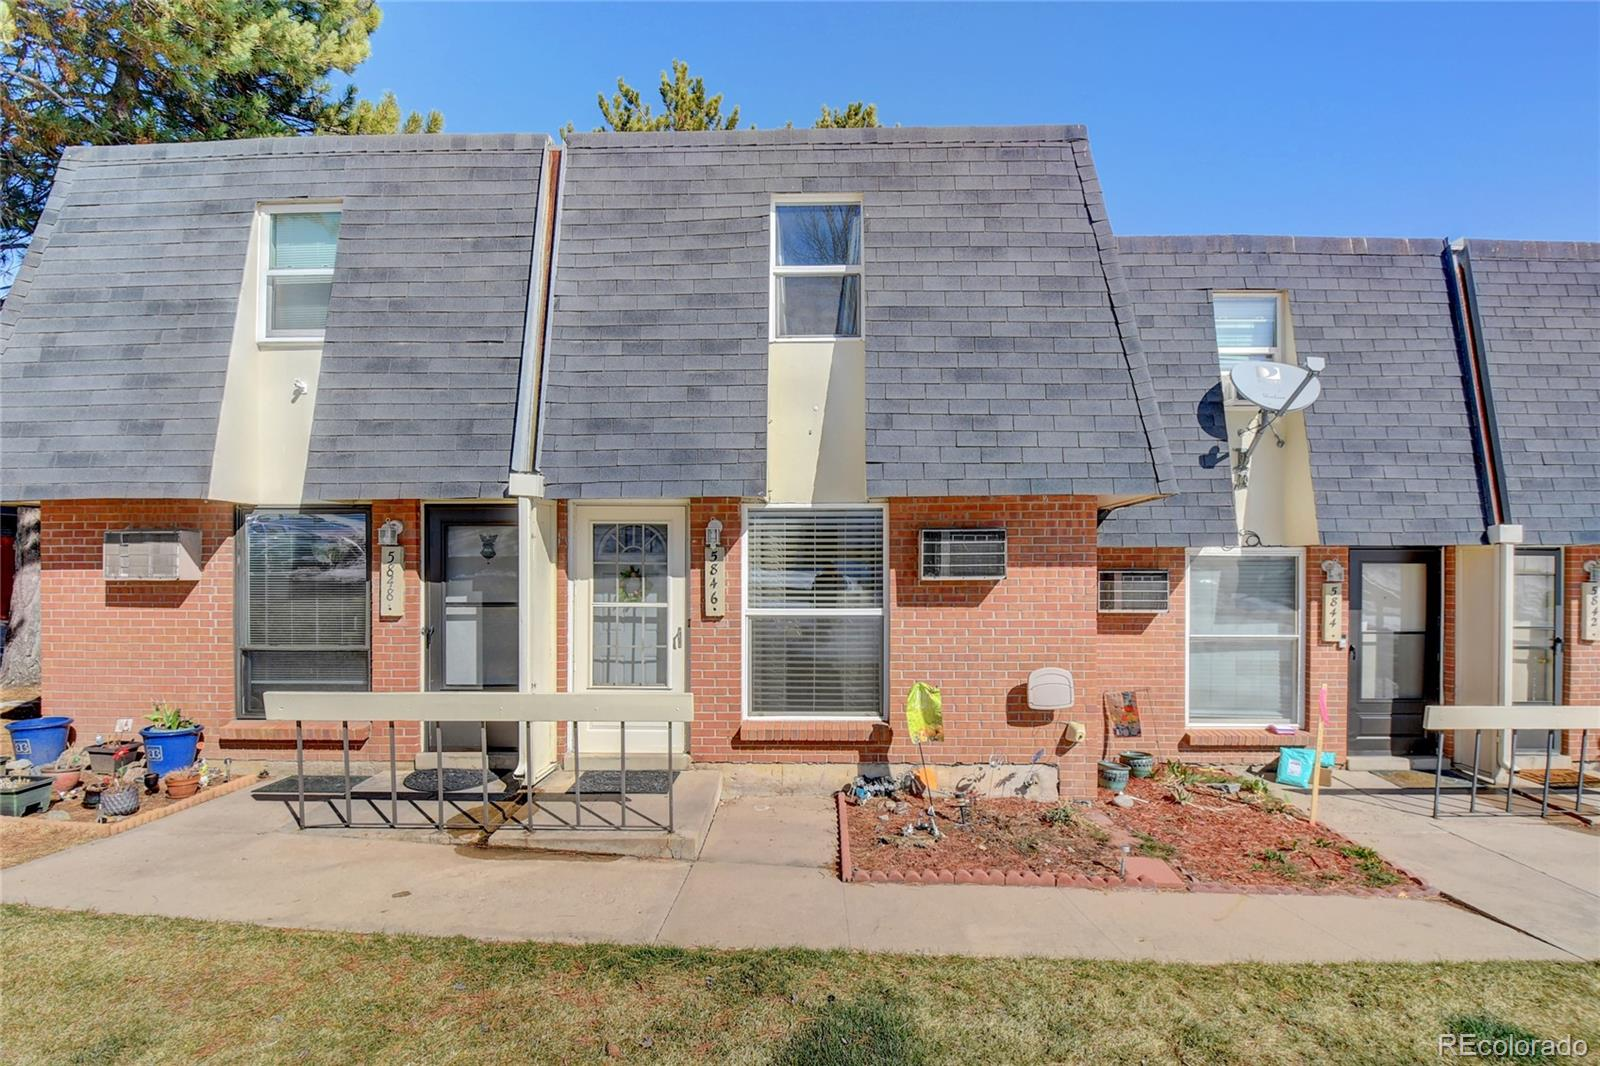 You will love this quiet townhome community in a great location that is central to everything.  This super cute home features 3 levels with 2 bedrooms and 1 full bath upstairs, a 1/2 bath, kitchen, dining and living room on the main level, and a basement with laundry, bonus space and room to grow.  All appliances are included plus washer and dryer.  Enjoy your private enclosed patio and reserved parking.  Easy access to schools, shopping, dining and transportation.  Enjoy the outdoors with Big Dry Creek trail around the corner and the Highline Canal only a 10 minute walk.